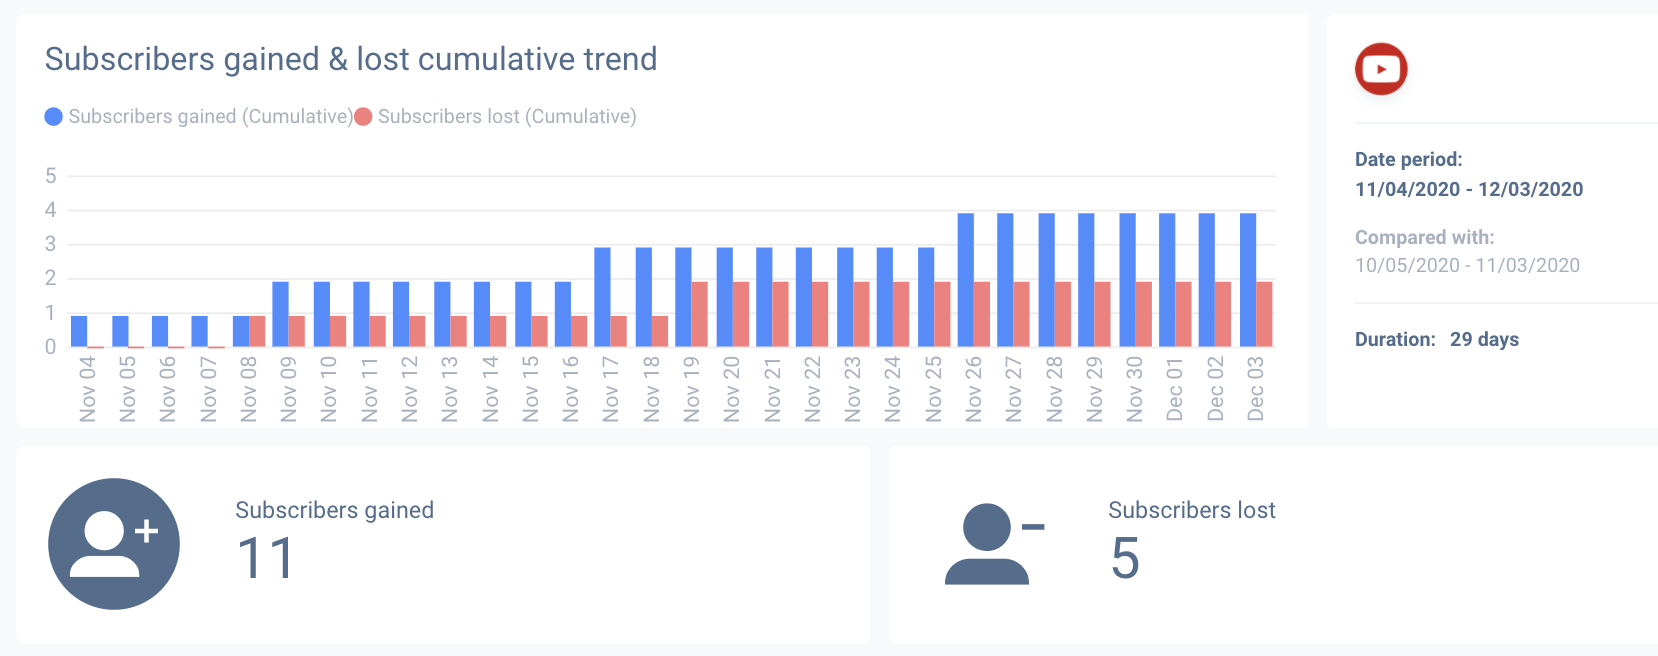 Youtube analytics report you create should disclose subscriber growth rates.